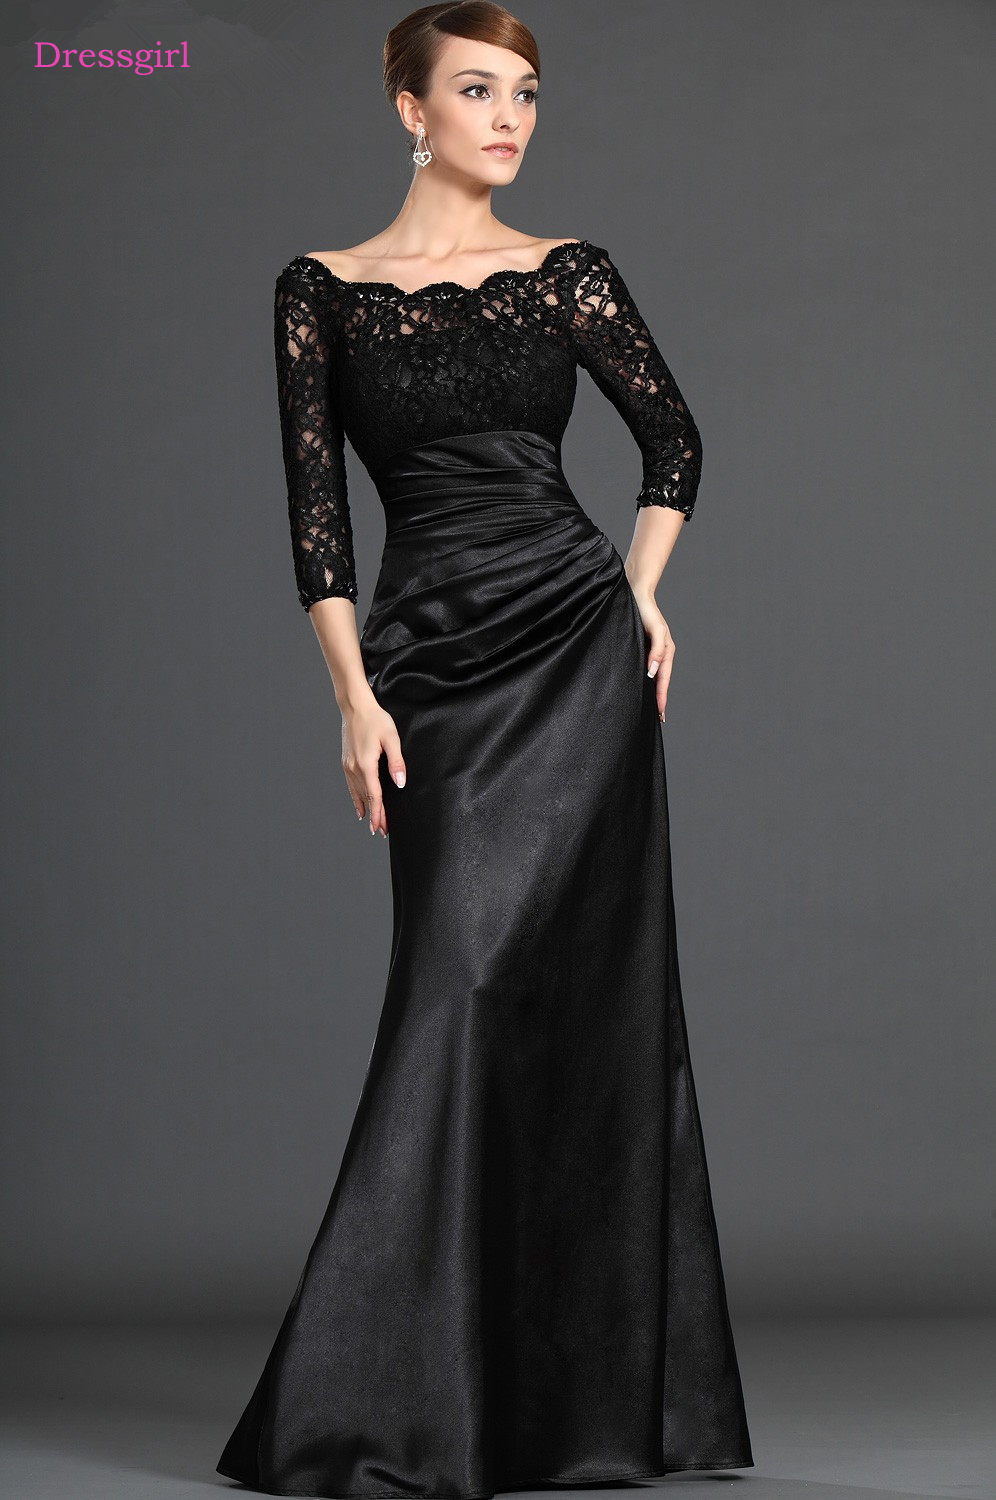 Black 2019 Mother Of The Bride Dresses Mermaid 3/4 Sleeves Satin Lace Plus Size Long Elegant Groom Mother Dresses Wedding